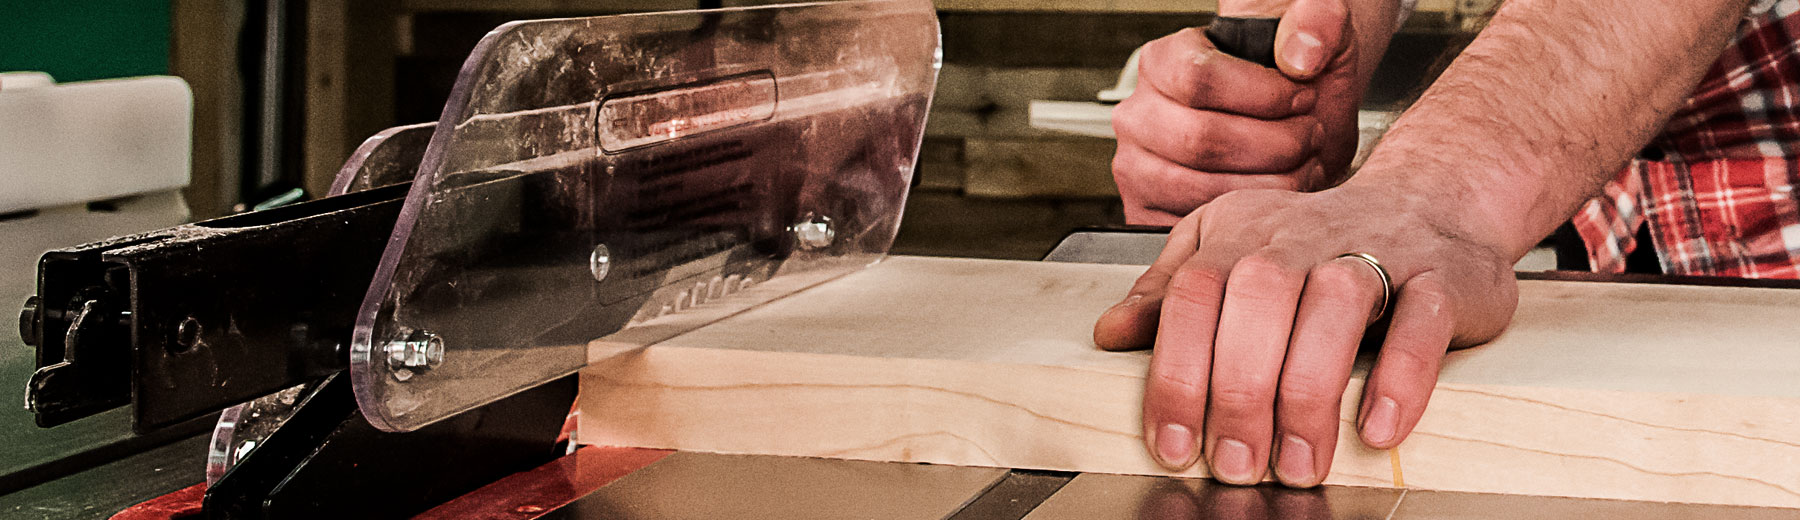 Jet Woodworking Table Saws